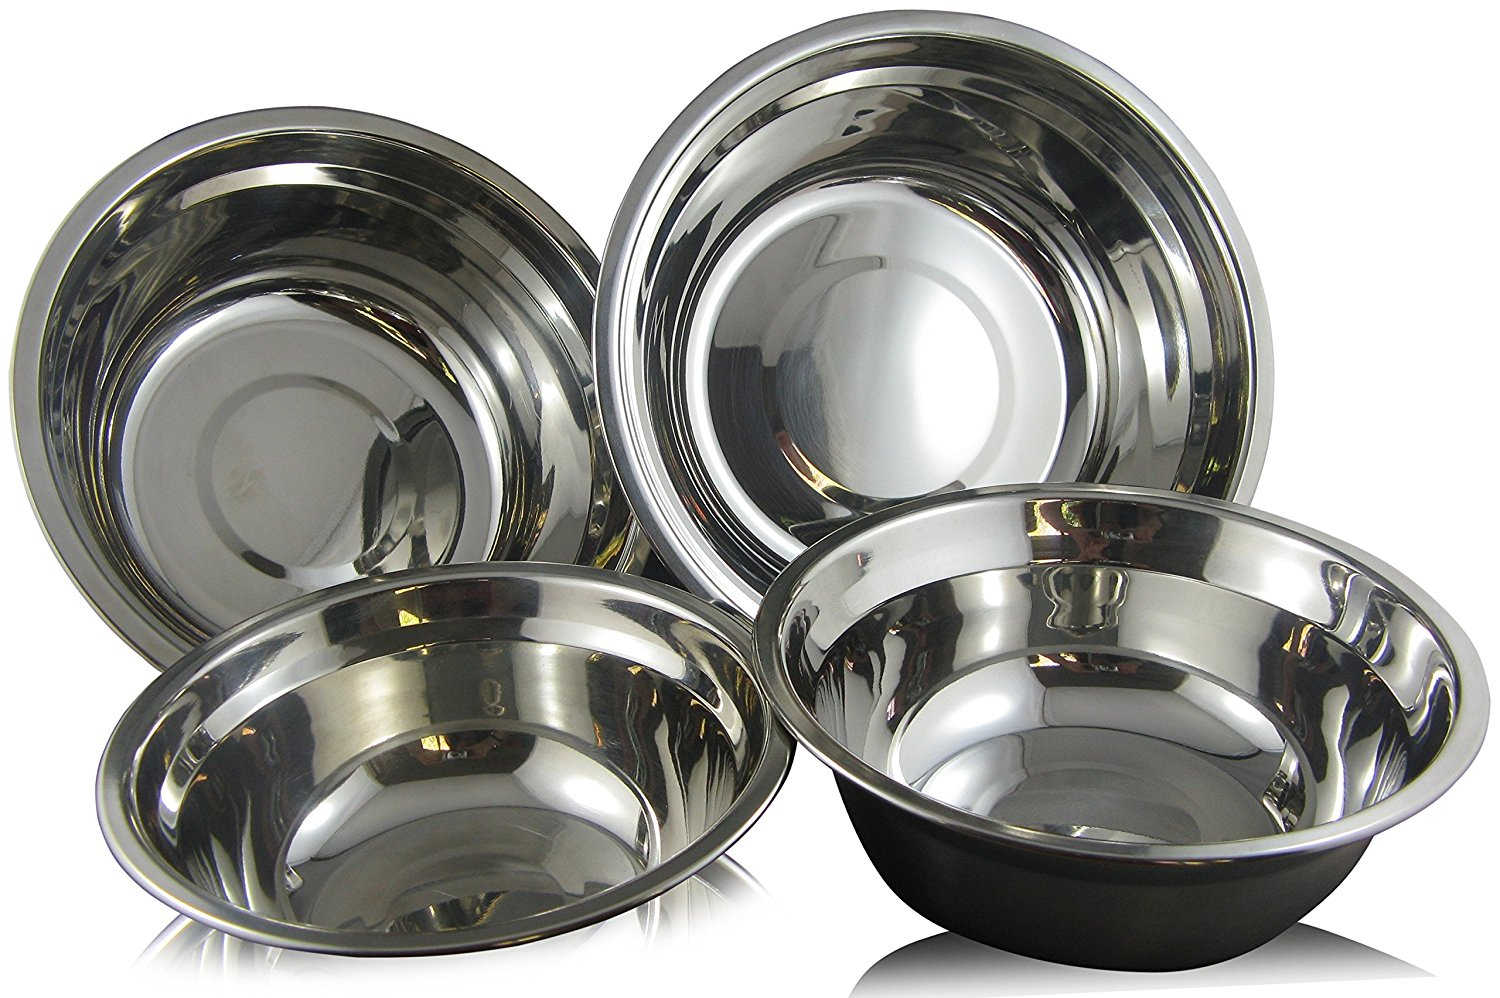 Checkered Chef Stainless Steel Mixing Bowl Set 4 Metal